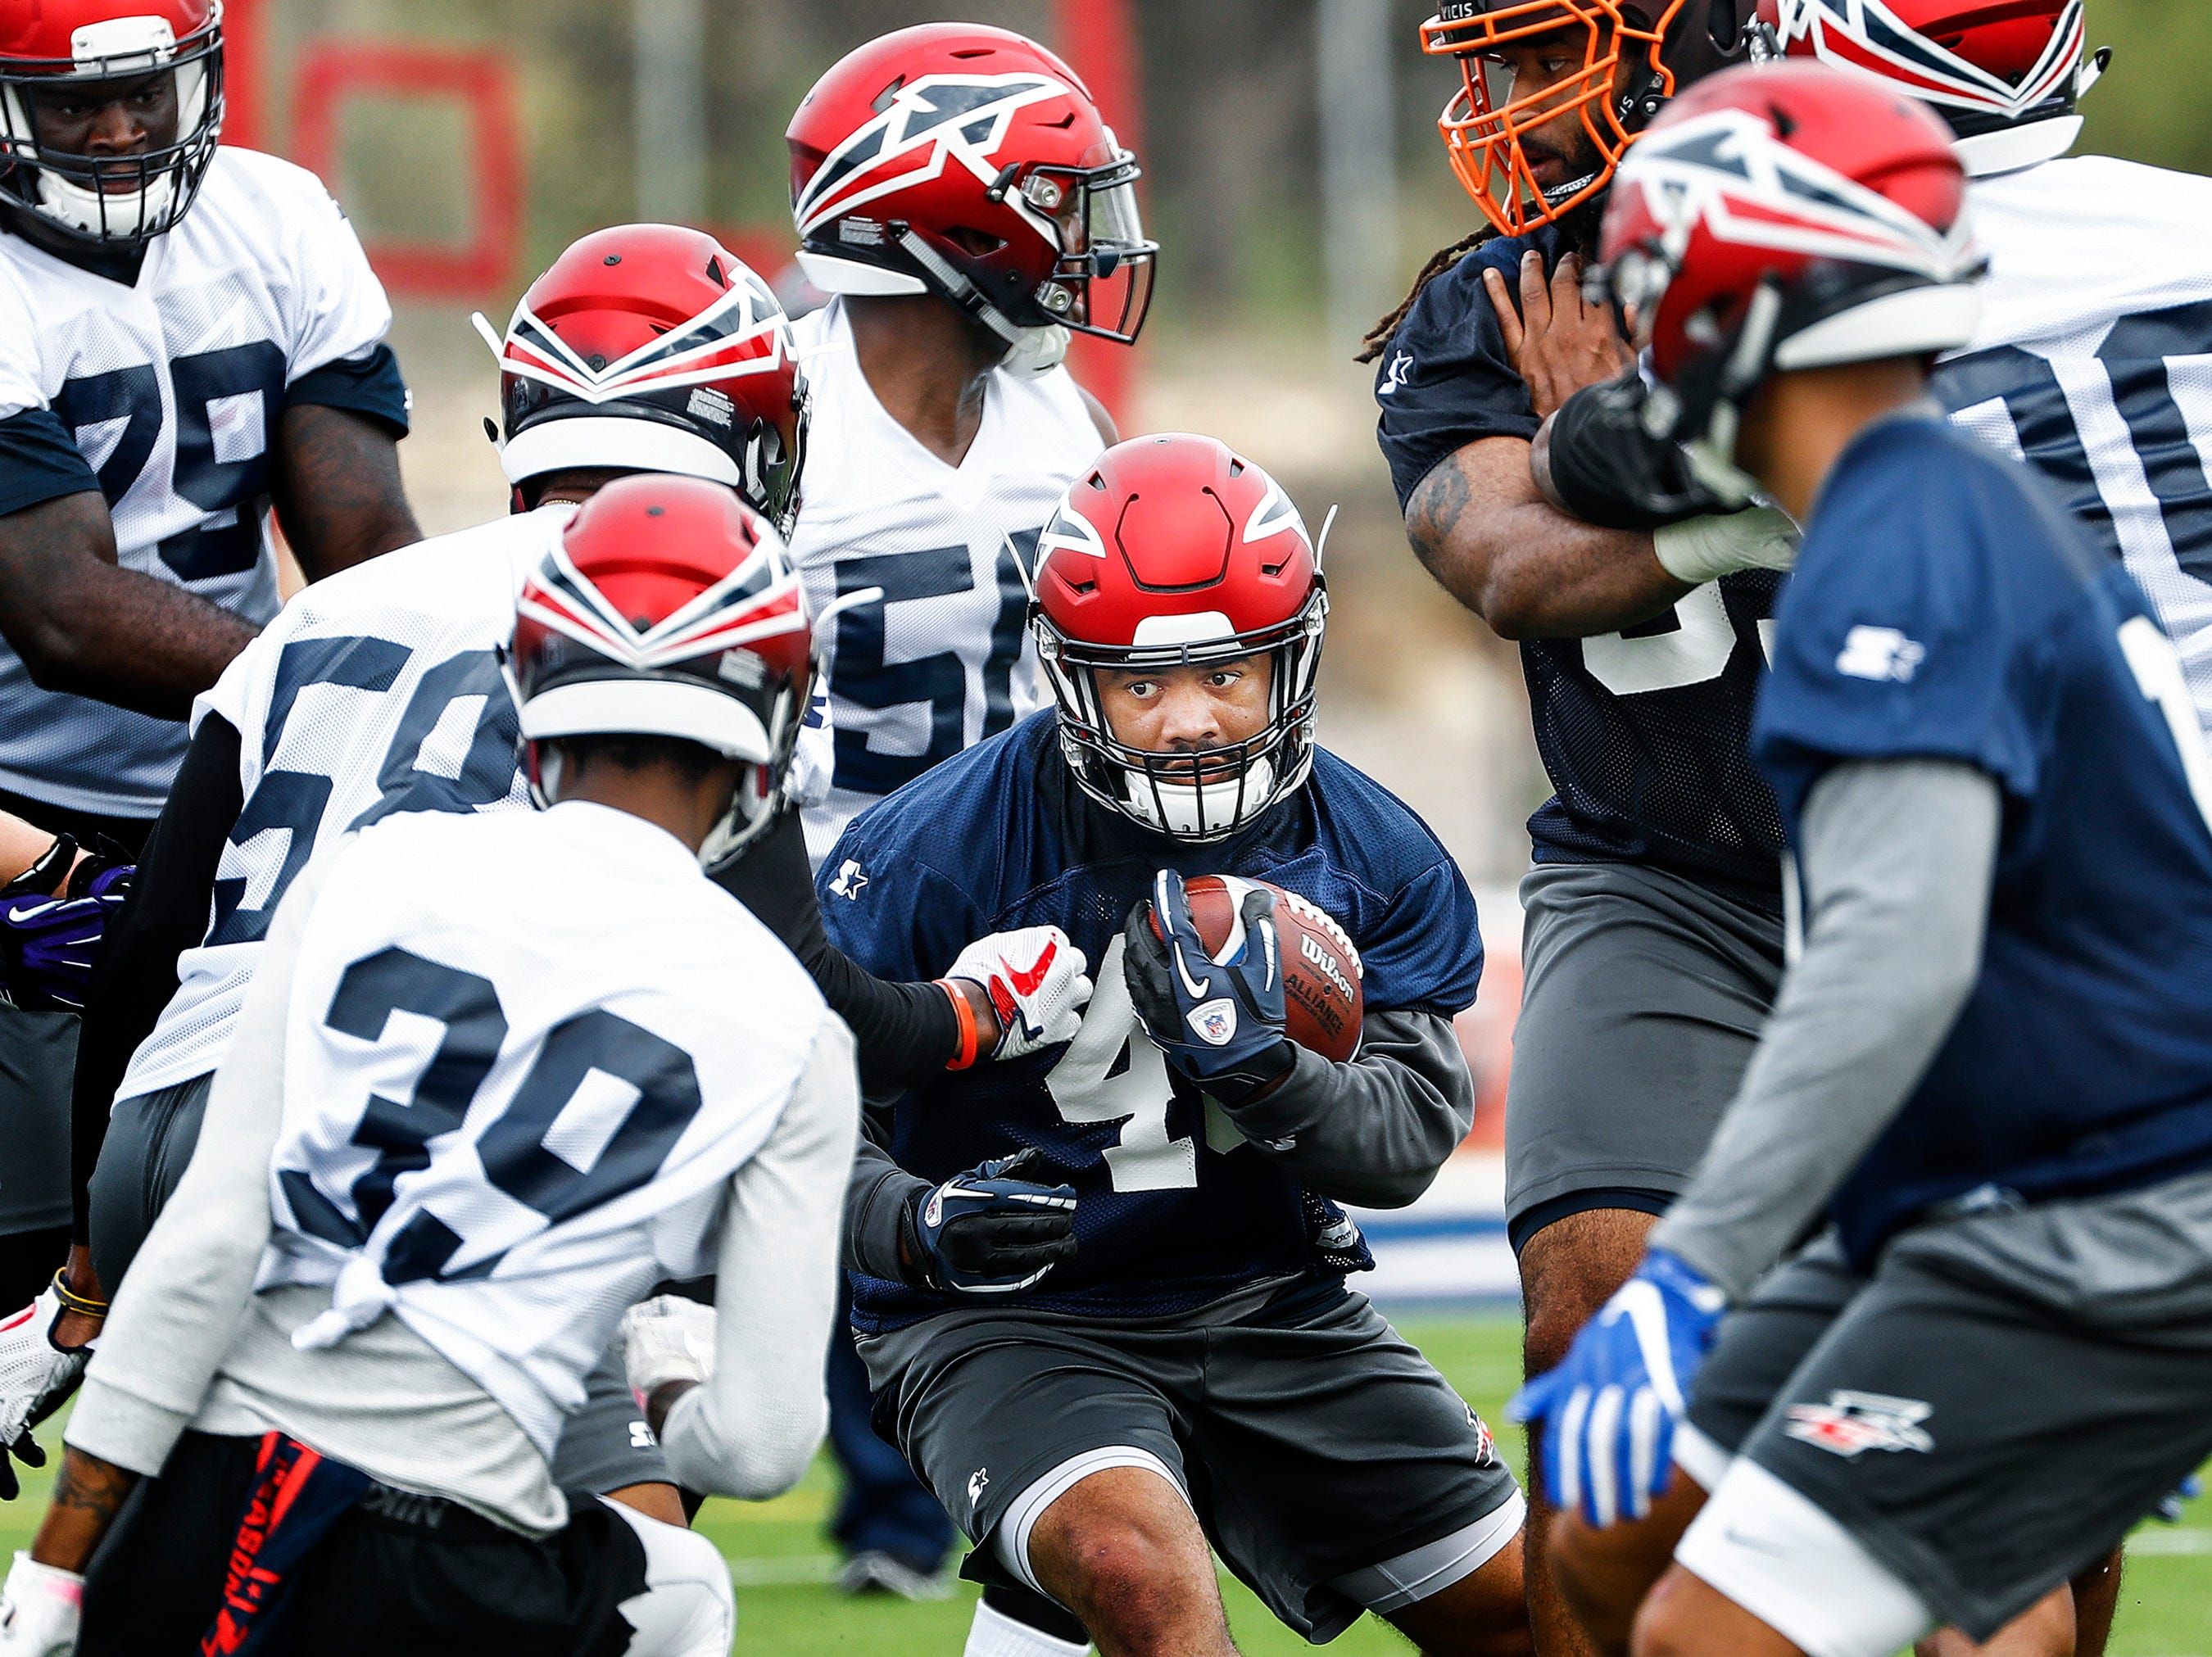 Memphis Express running back Kenny Hilliard looks for a lane during training camp in San Antonio, Texas.